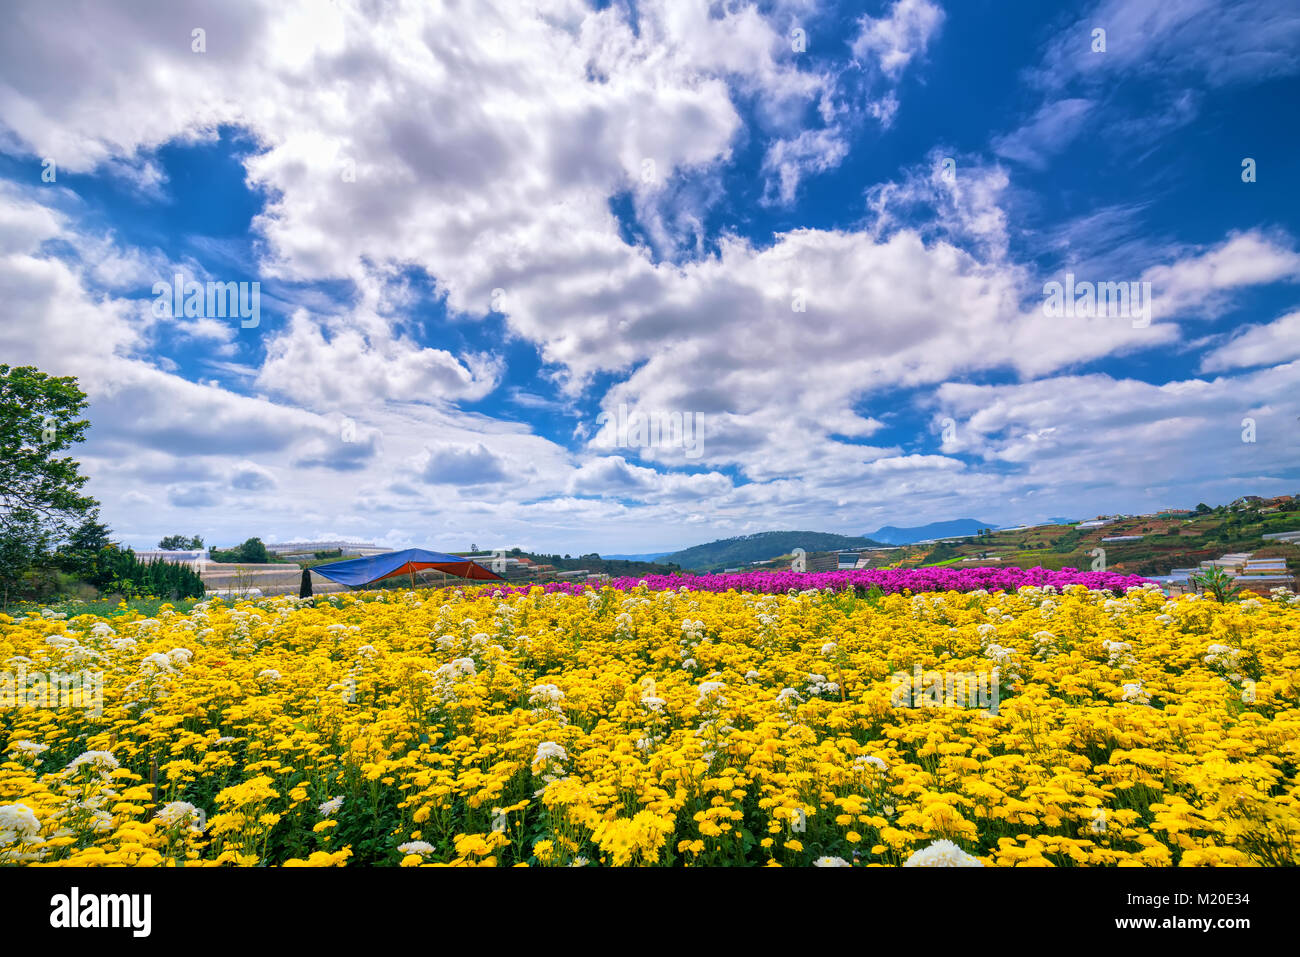 Yellow daisy flower field blooming in spring morning with blue ...